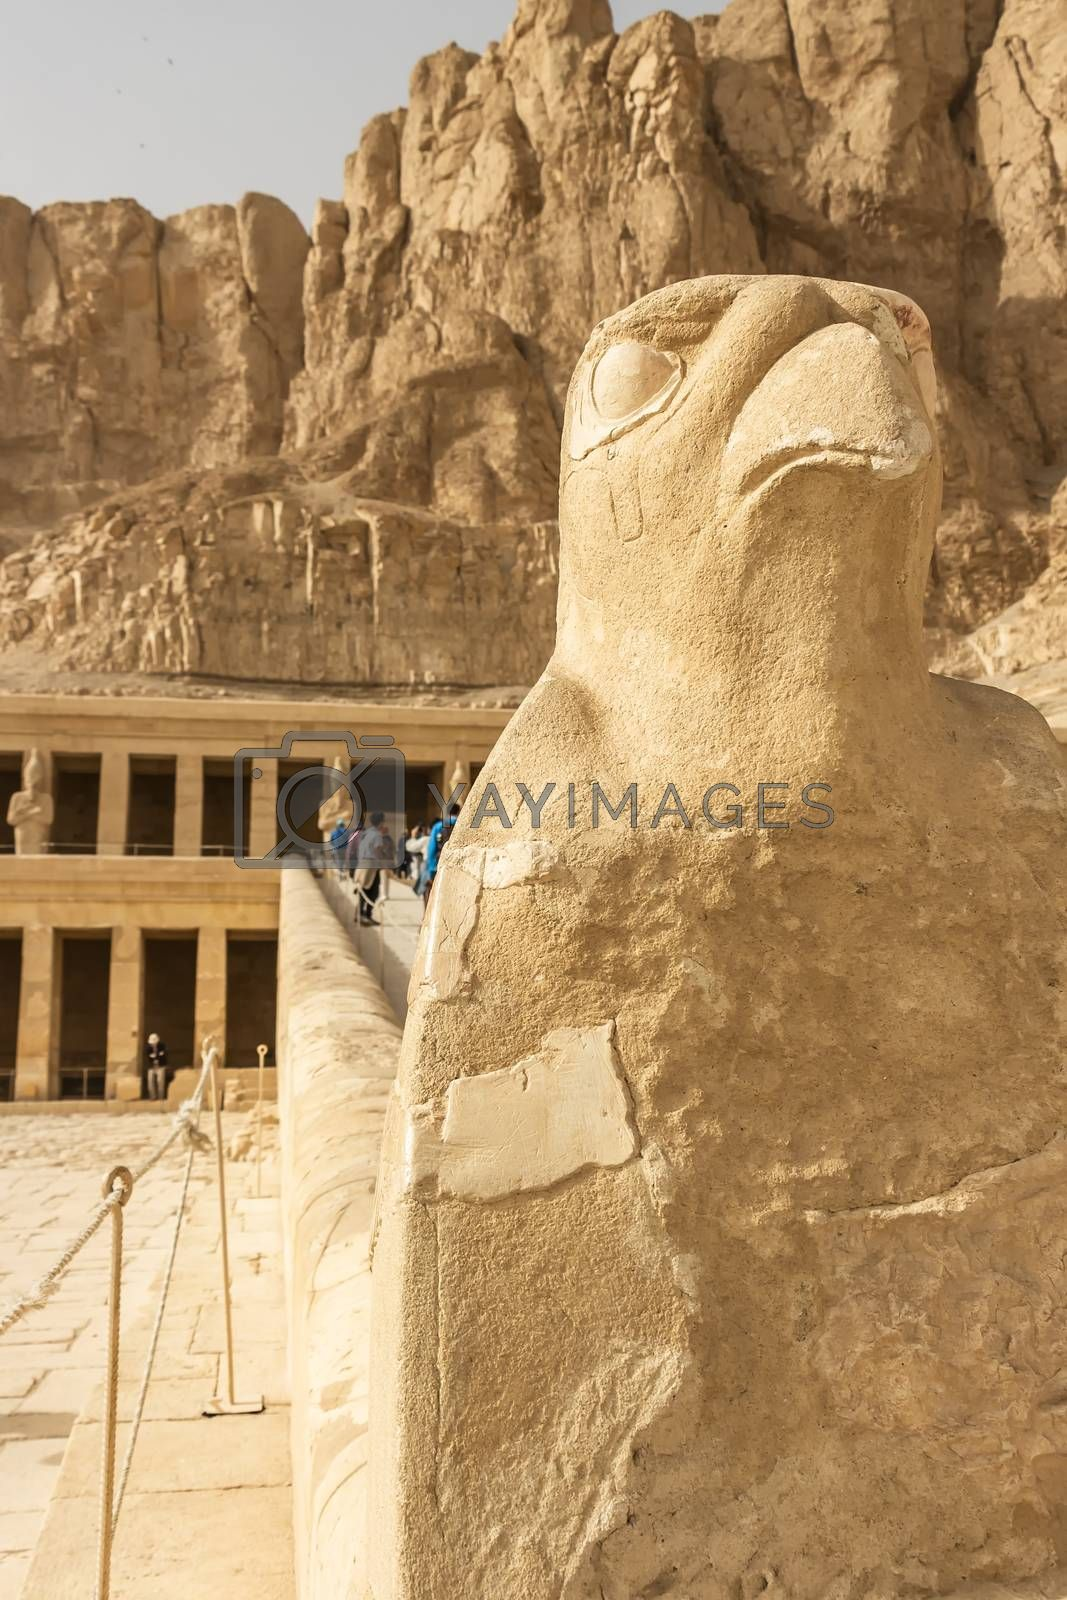 Sculpture of ancient Egyptian God Horus with head of a hawk at the Temple of Hatshepsut